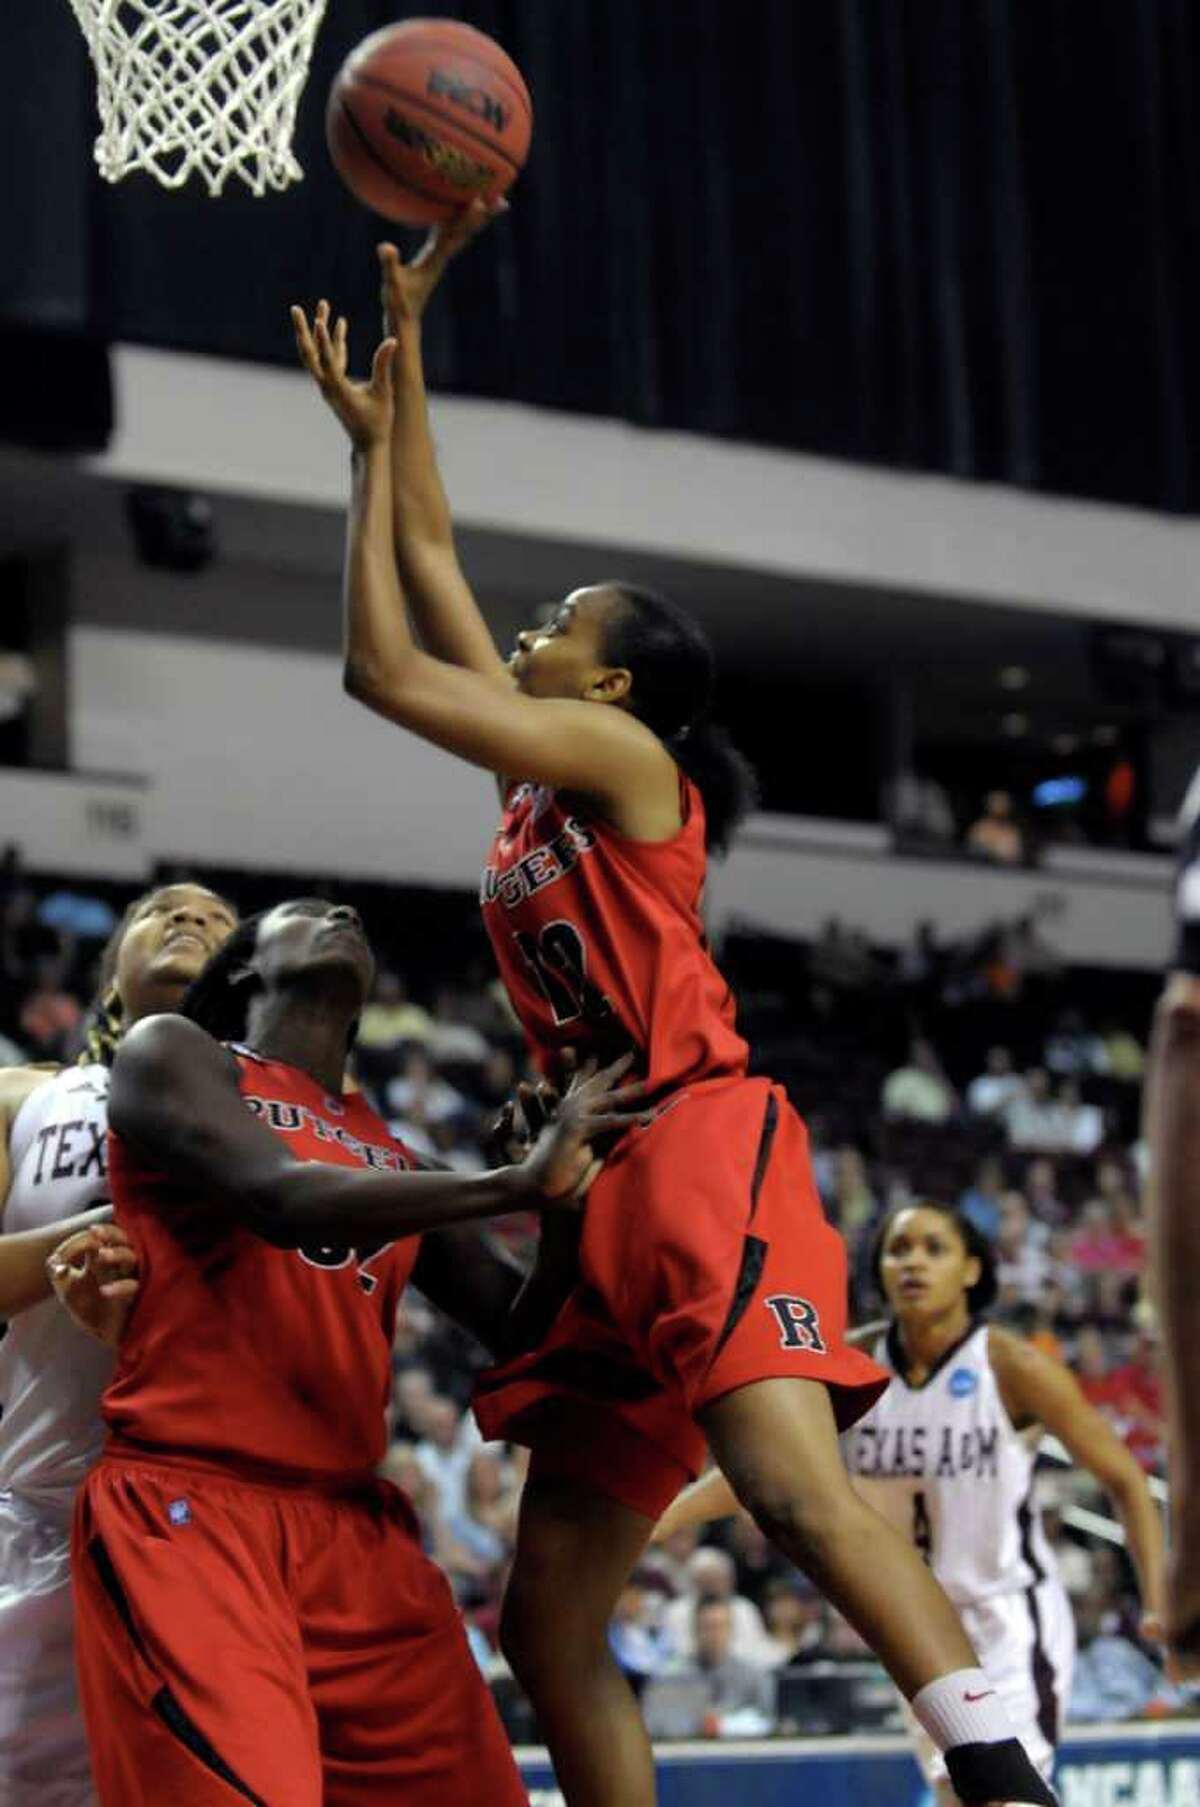 Rutgers guard Daisha Simmons (12) shoots over the Texas A&M defense during the first half of a second-round game of the NCAA women's college basketball tournament, Tuesday, March 22, 2011, in Shreveport, La.